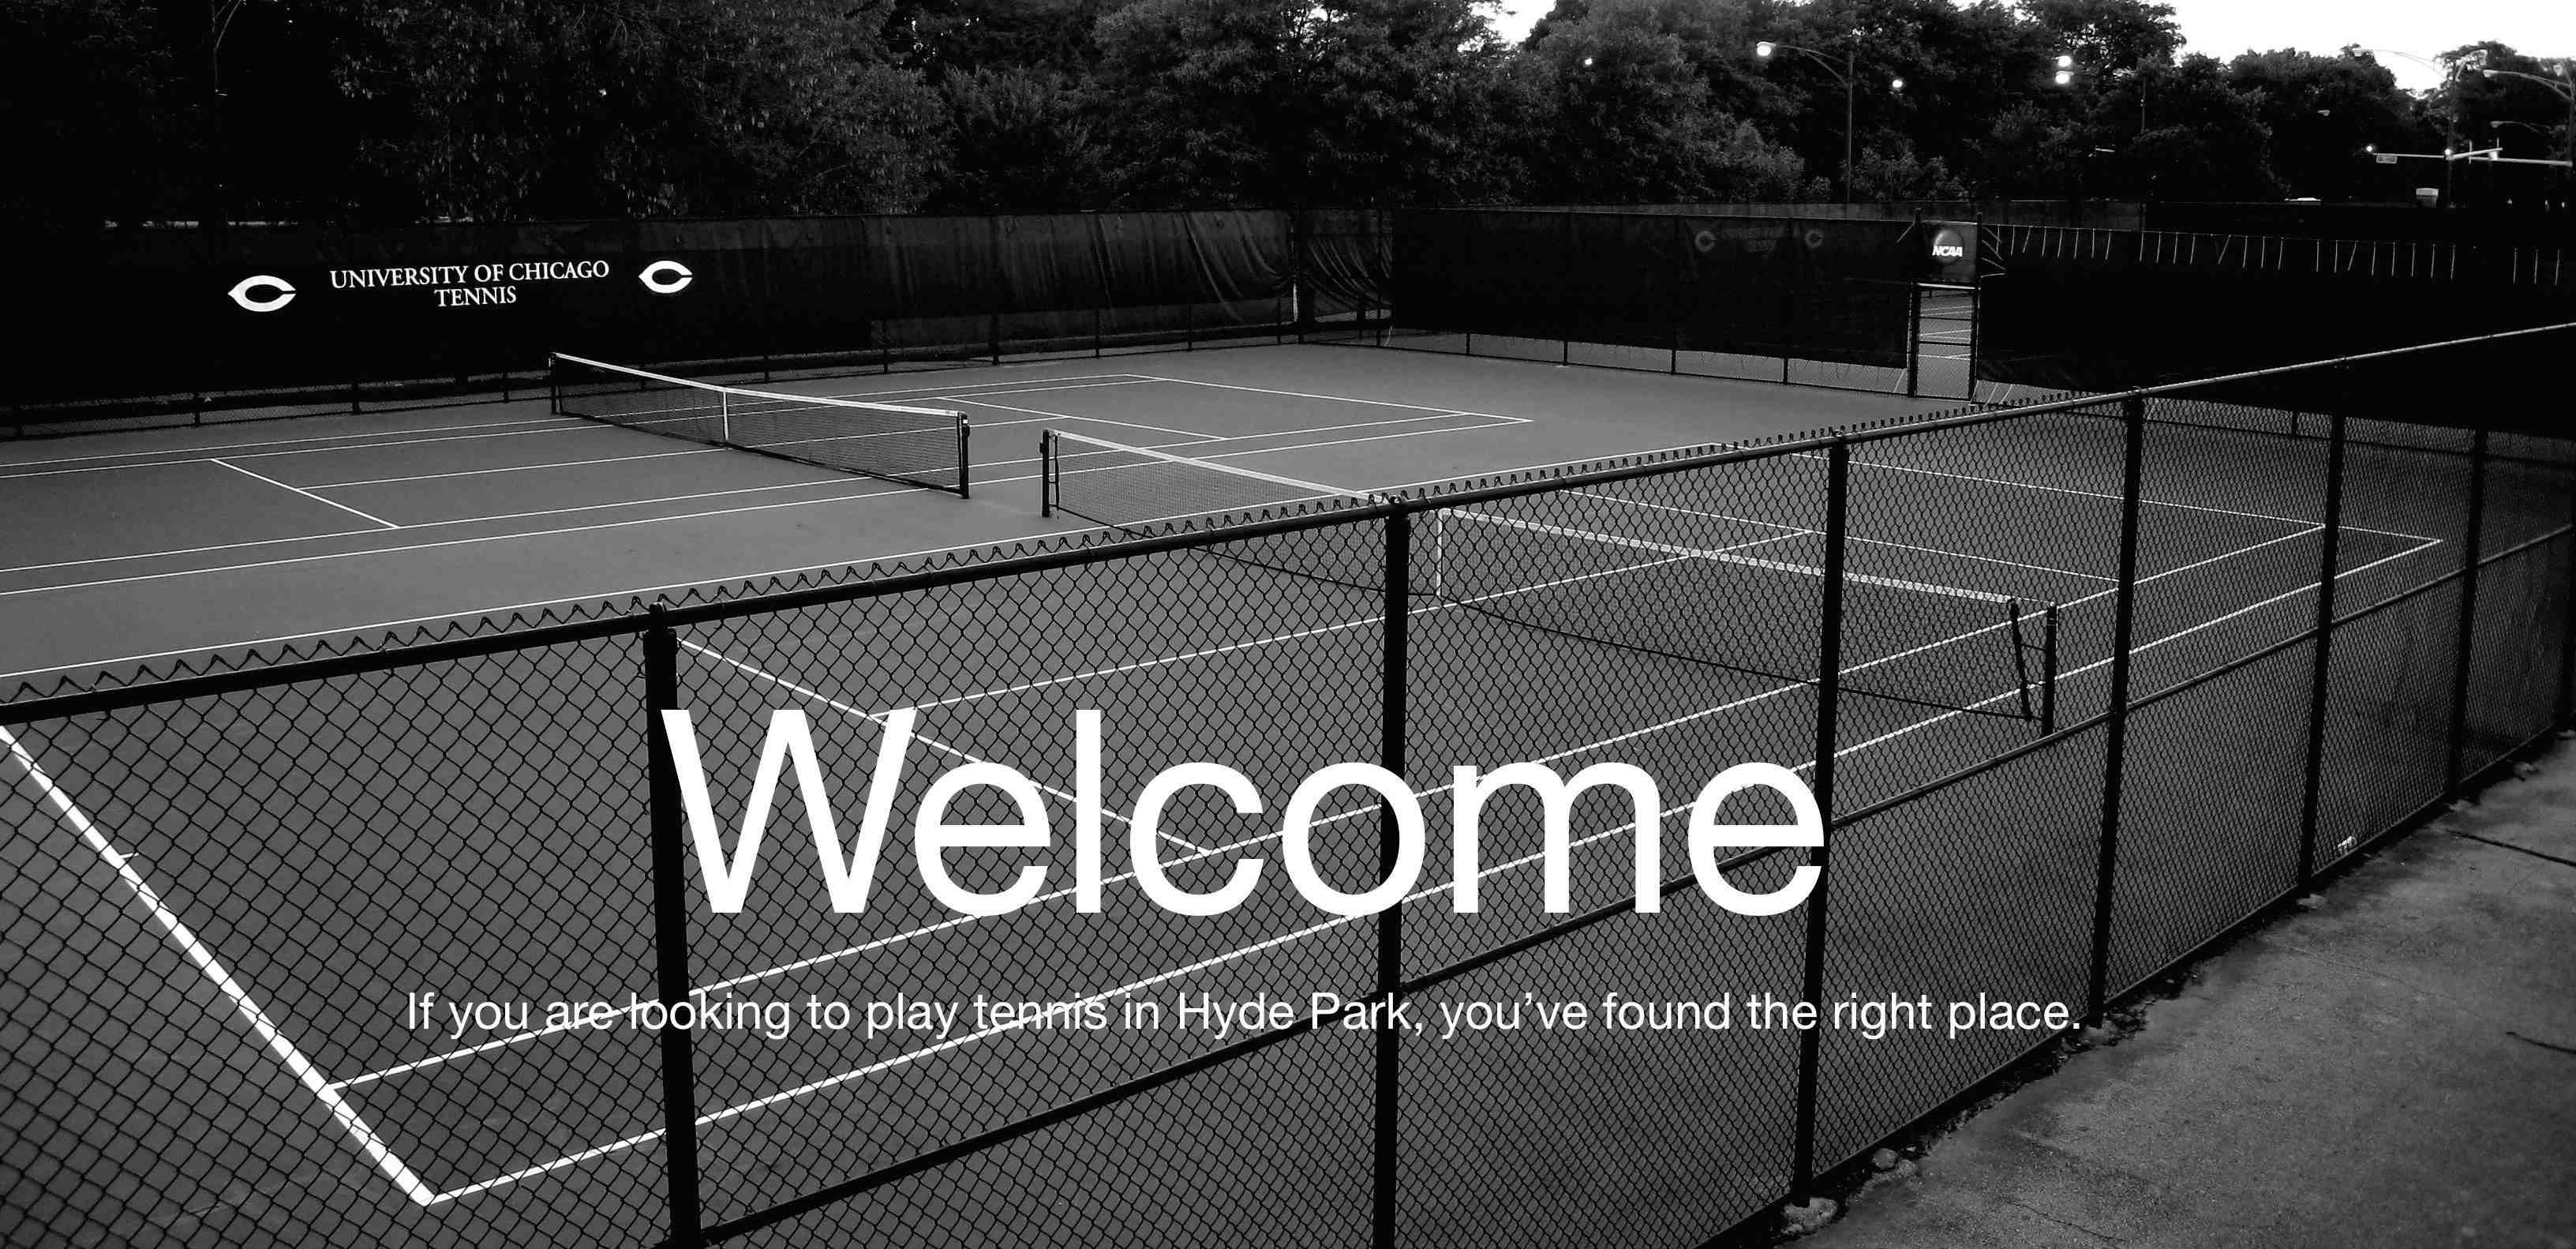 University of Chicago Tennis Club